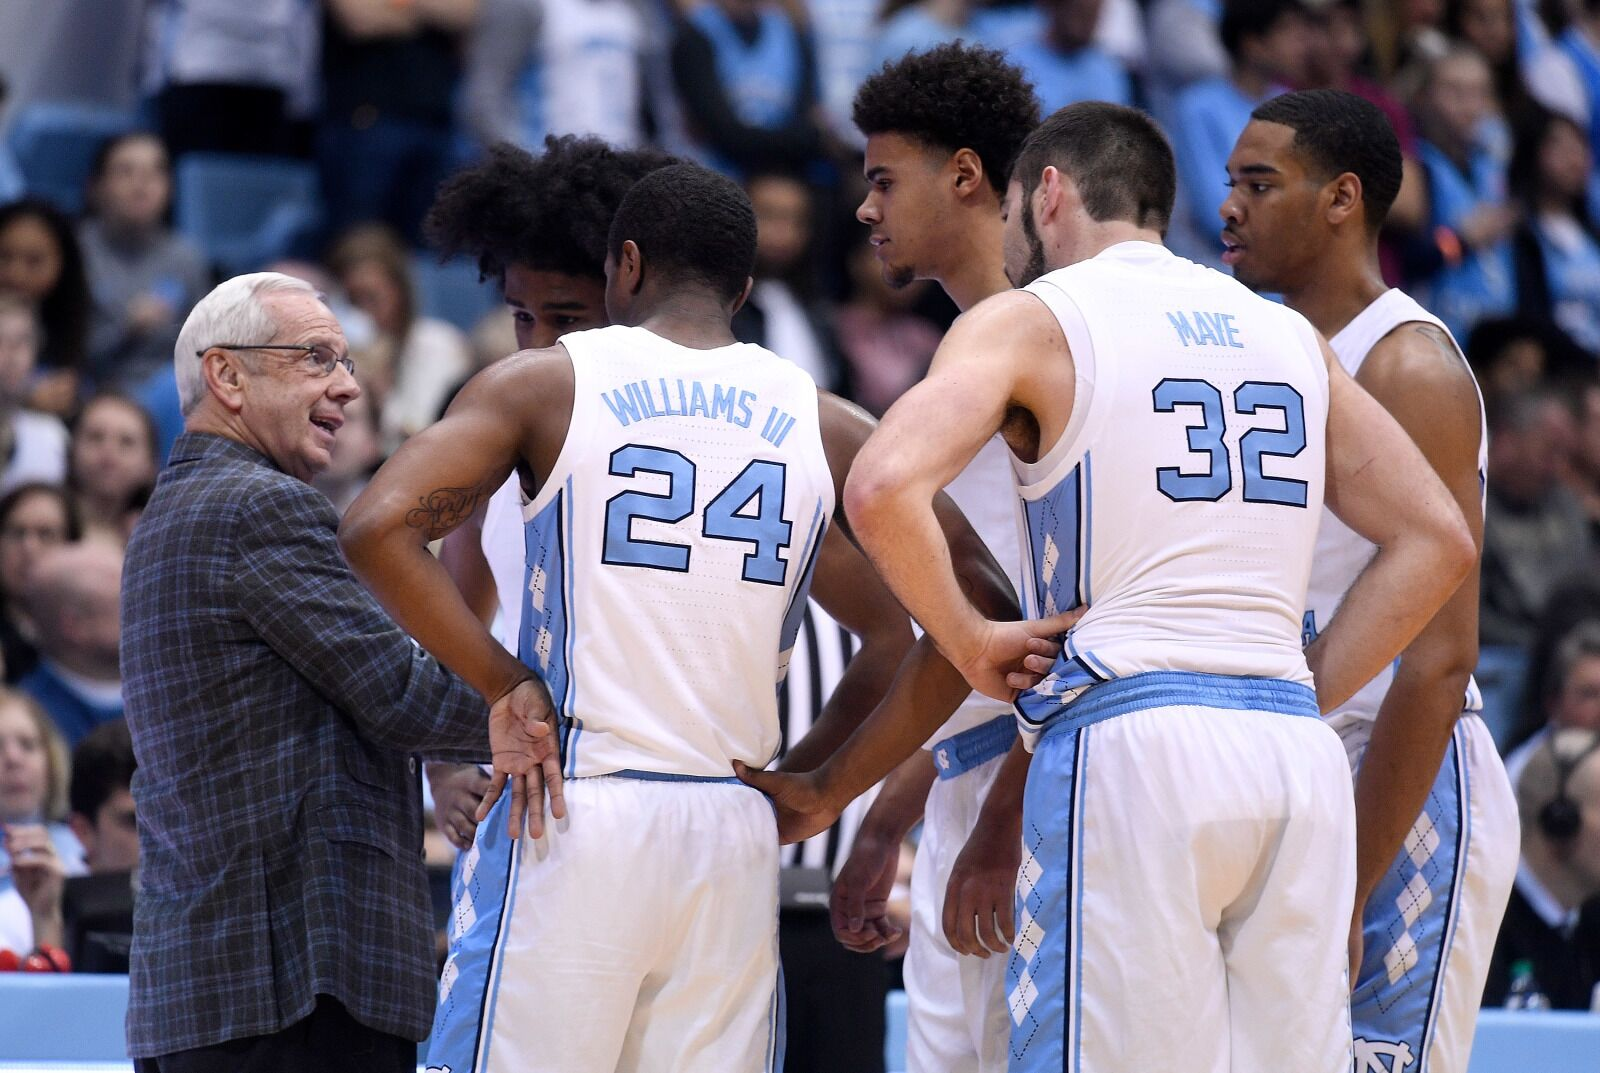 Duke Basketball: Tar Heels firing on all cylinders headed into rematch